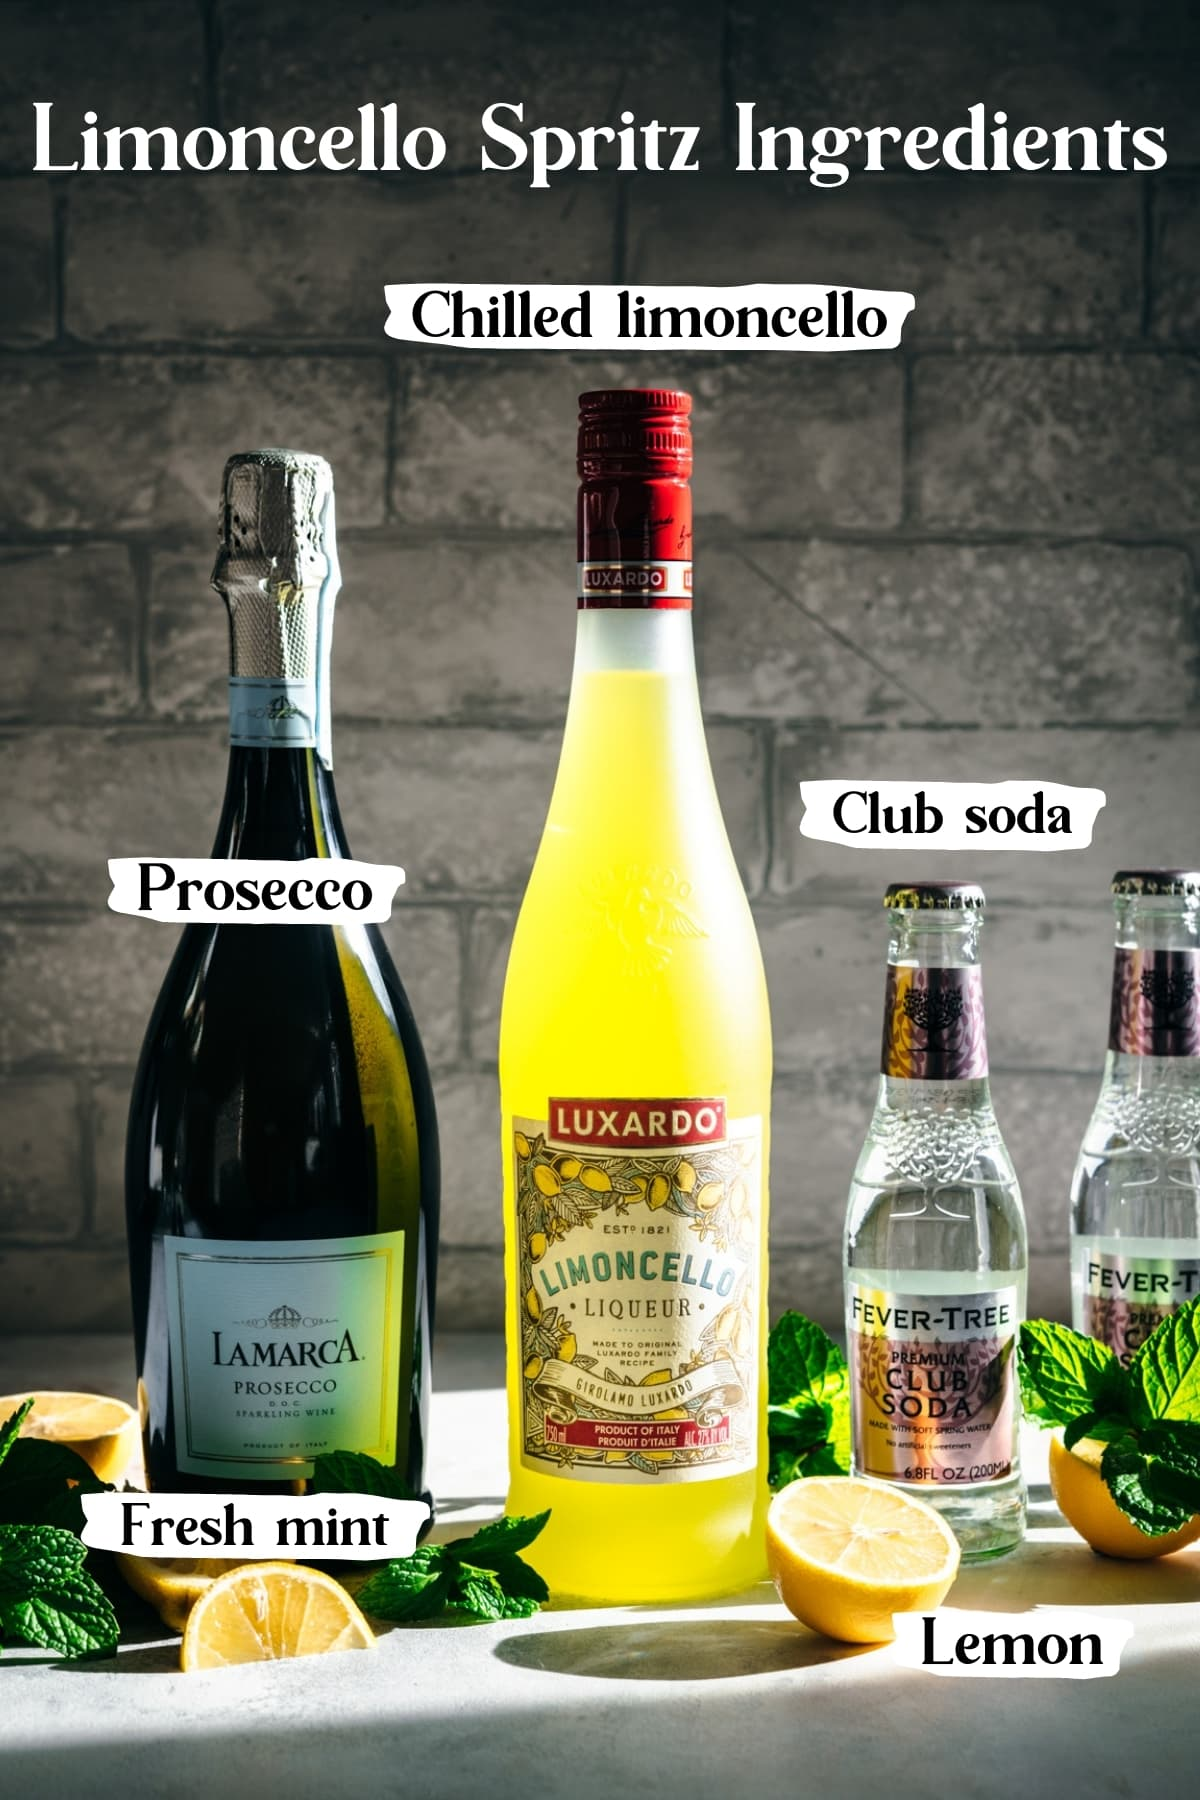 side view of ingredients for limoncello spritz.